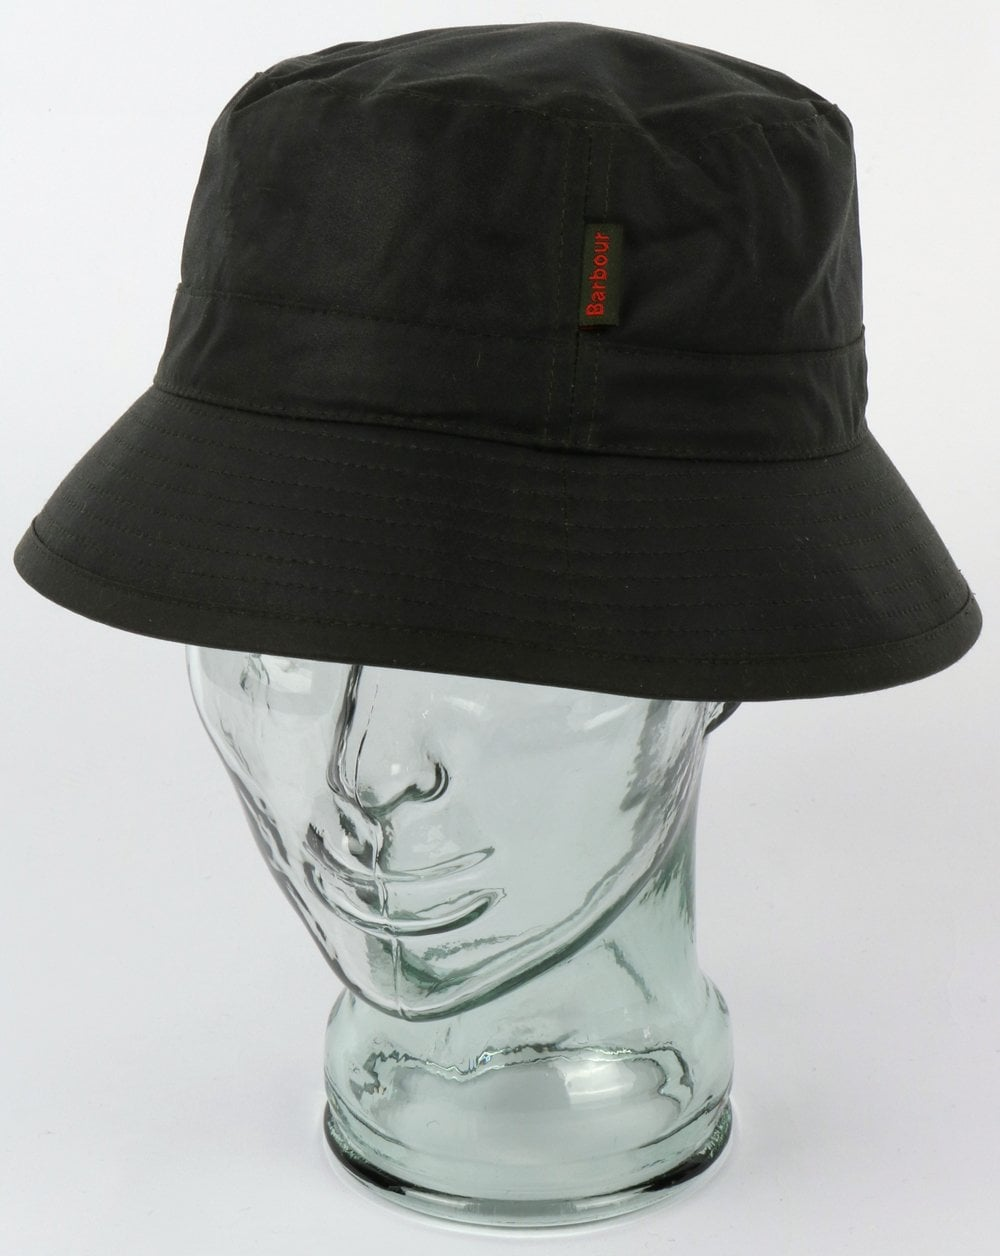 Barbour Wax Cotton Bucket Hat